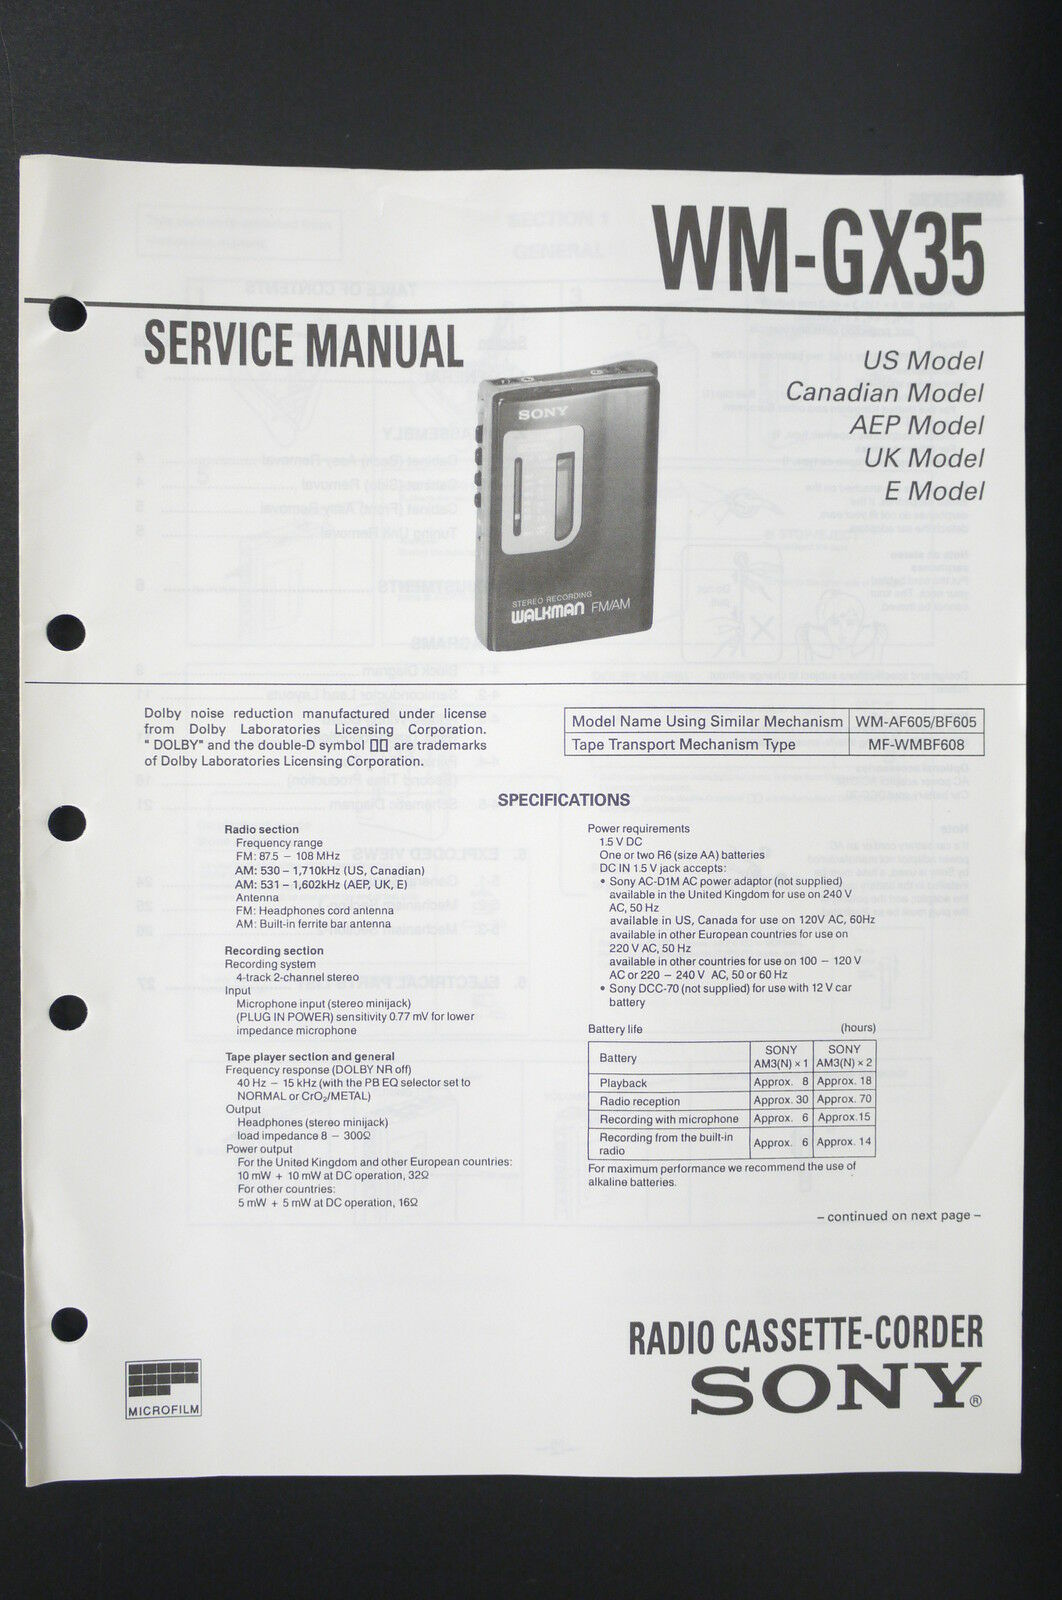 Sony Wm Gx35 Walkman Radio Cassette Corder Service Manual Wiring Sound Bar Diagram 1 Of 1only Available